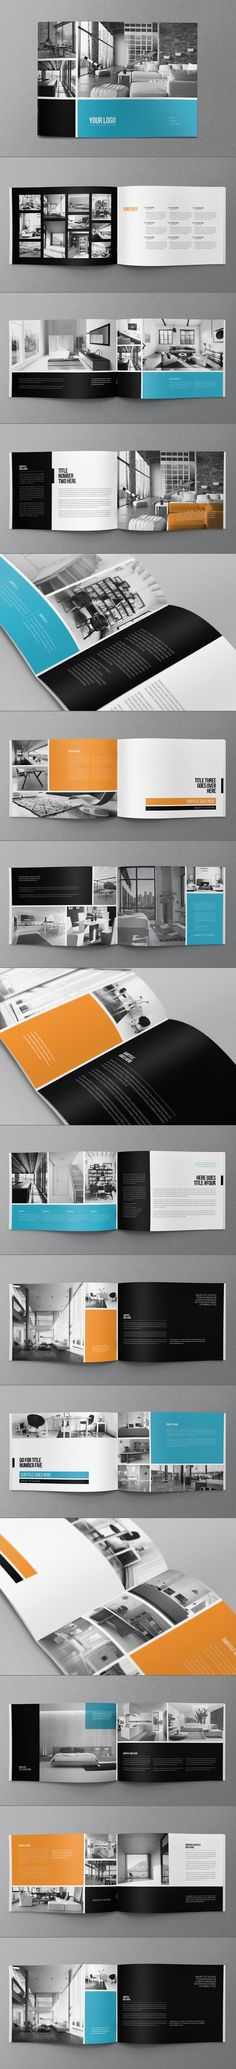 Minimal Modern Brochure. Download here: http://graphicriver.net/item/minimal-modern-brochure/8819275?ref=abradesign #brochure #design: